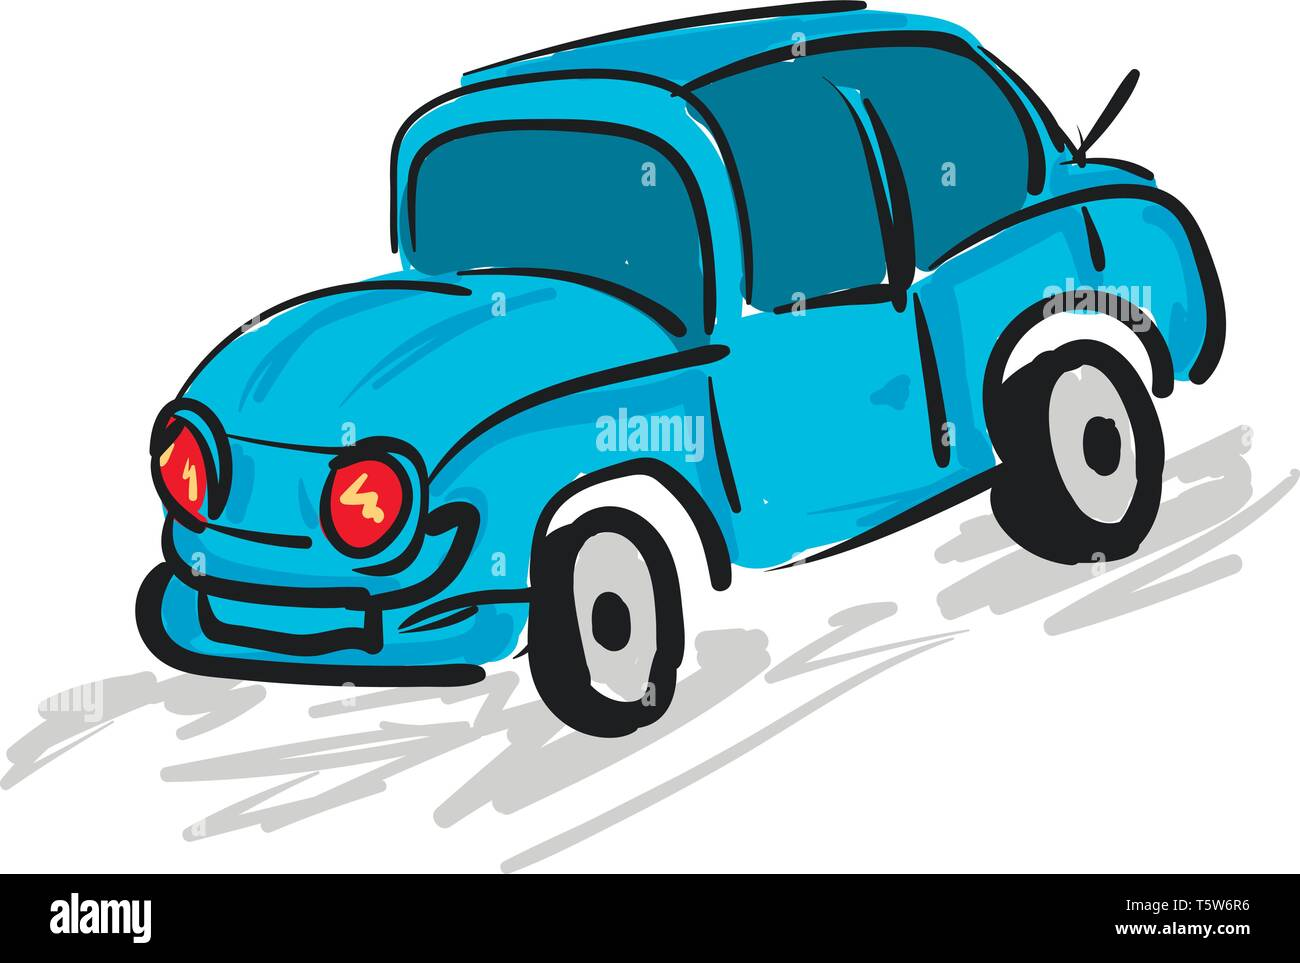 A blue car with red headlights, vector, color drawing or illustration. - Stock Image